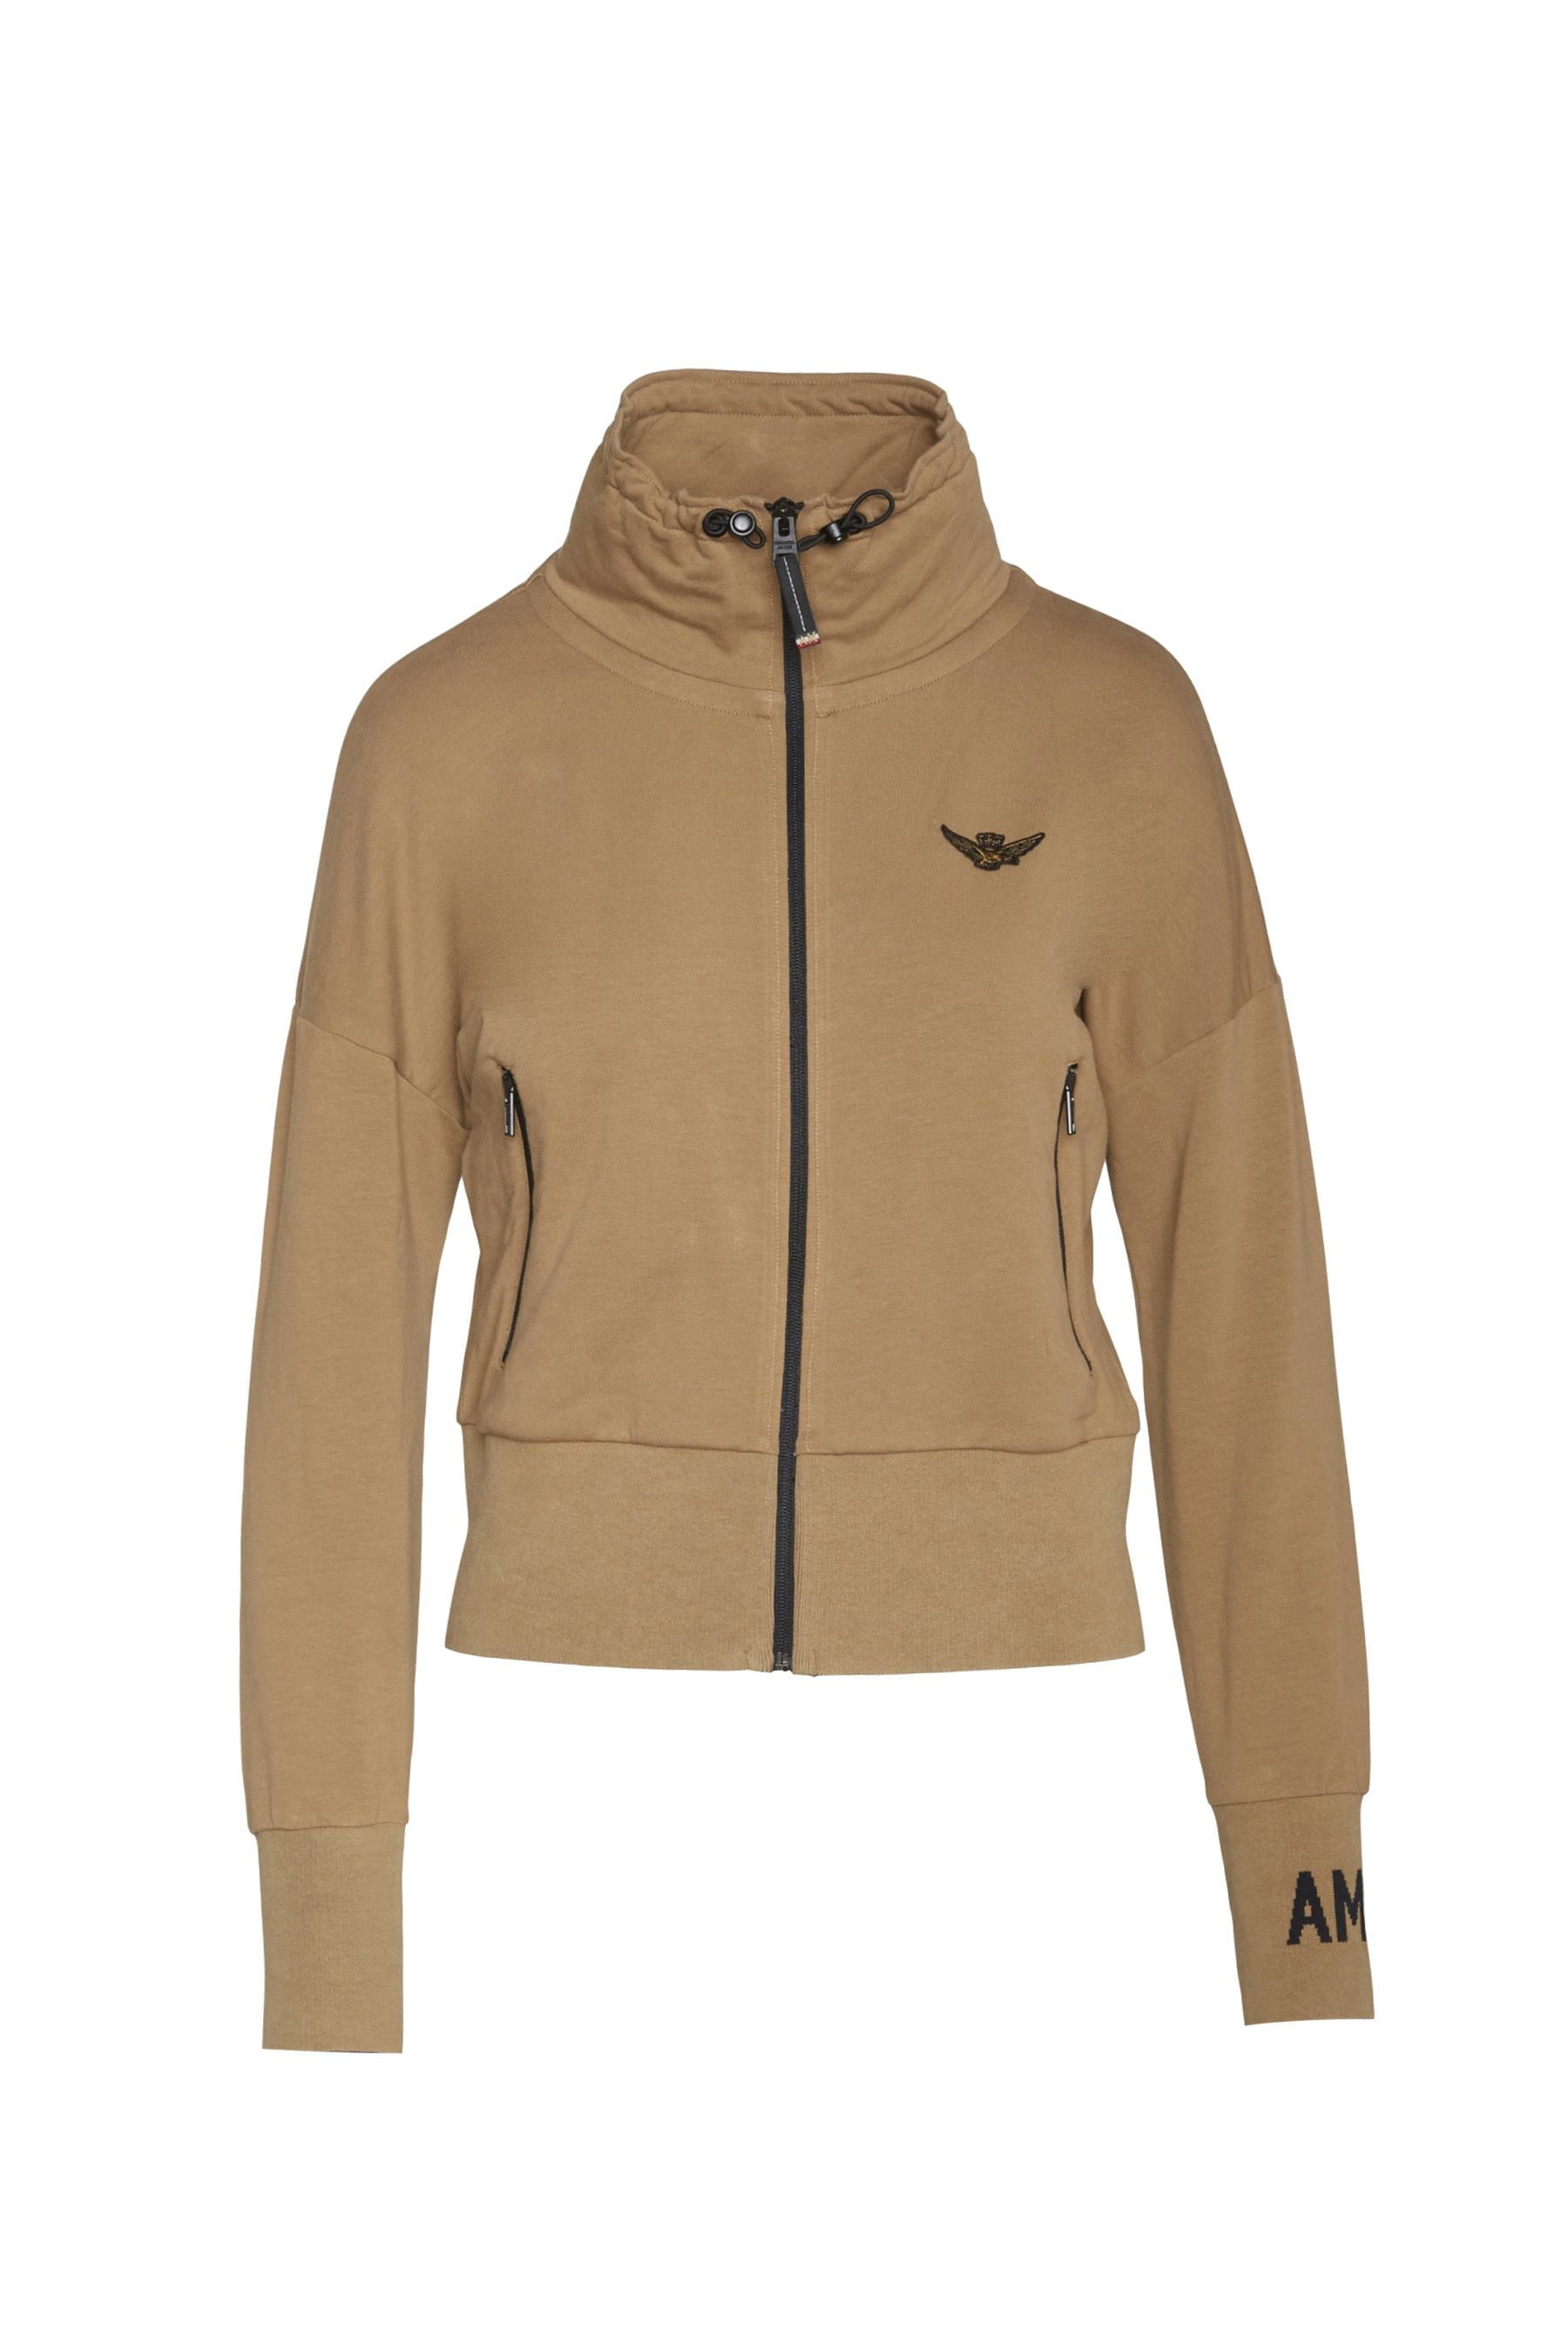 FE1560 - FELPA FULL ZIP 1